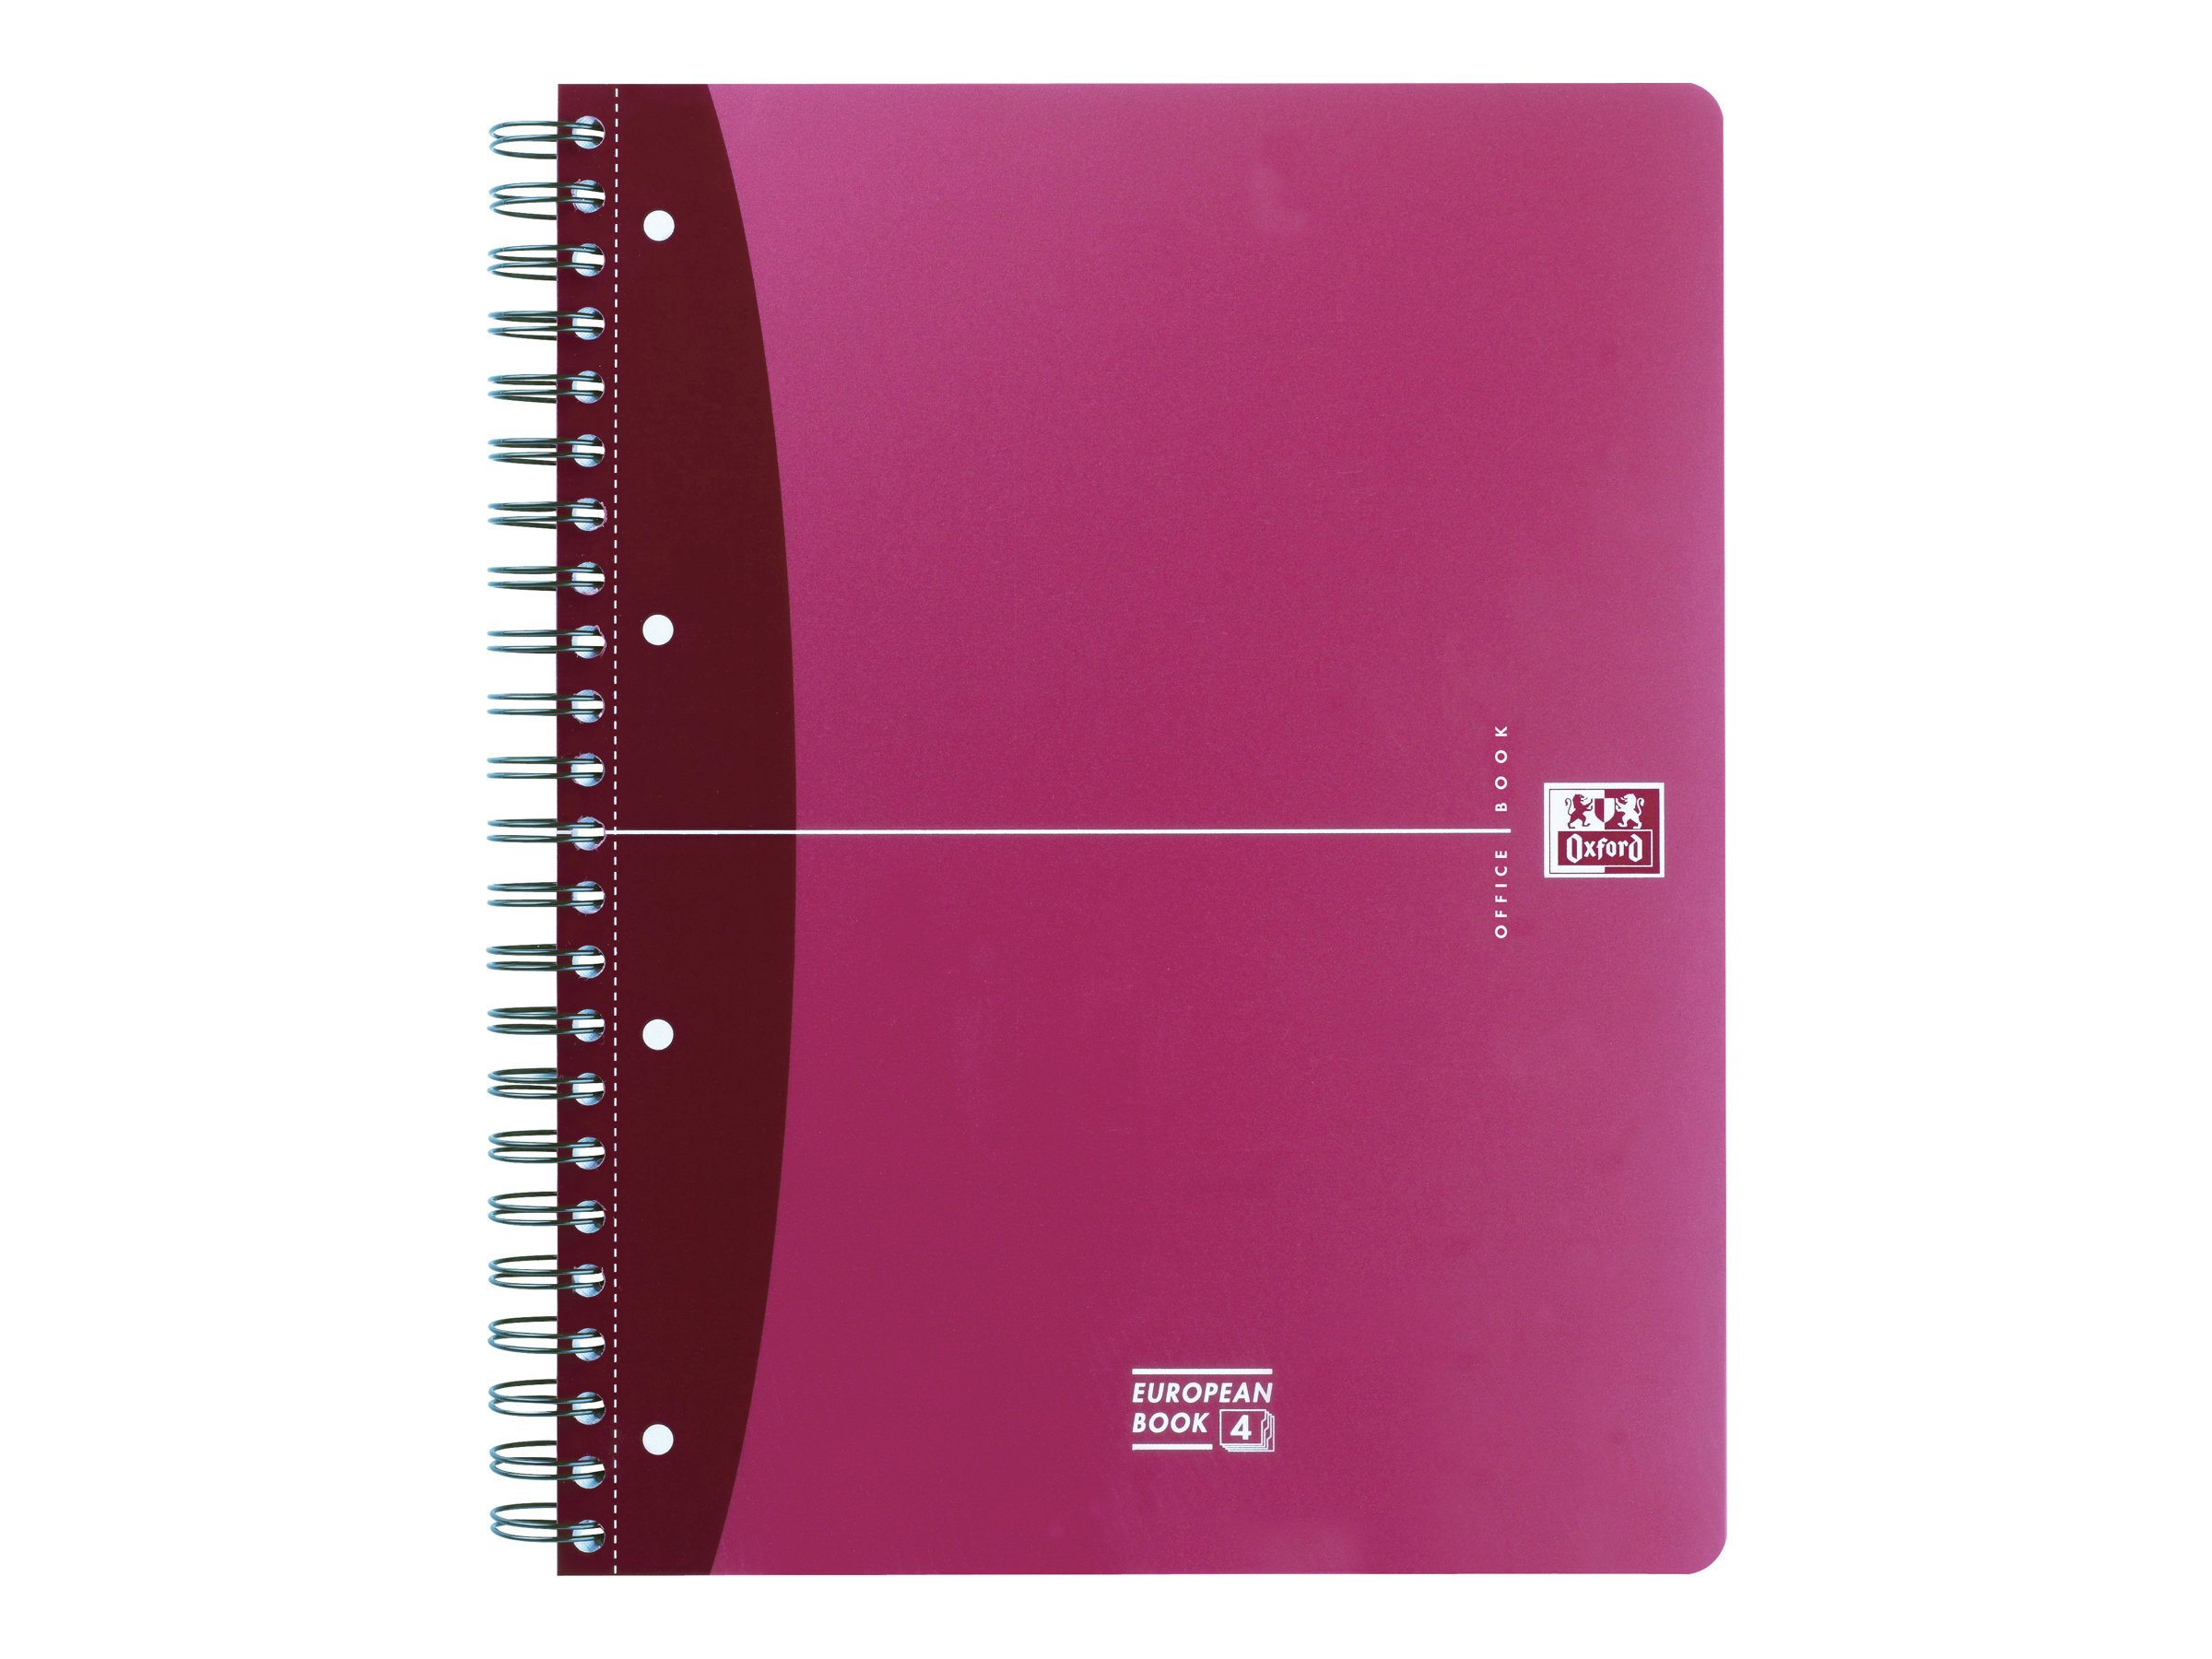 Oxford Office Europeanbook - A4+ - Cahier - 24 x 32 - 240 pages - Grands carreaux